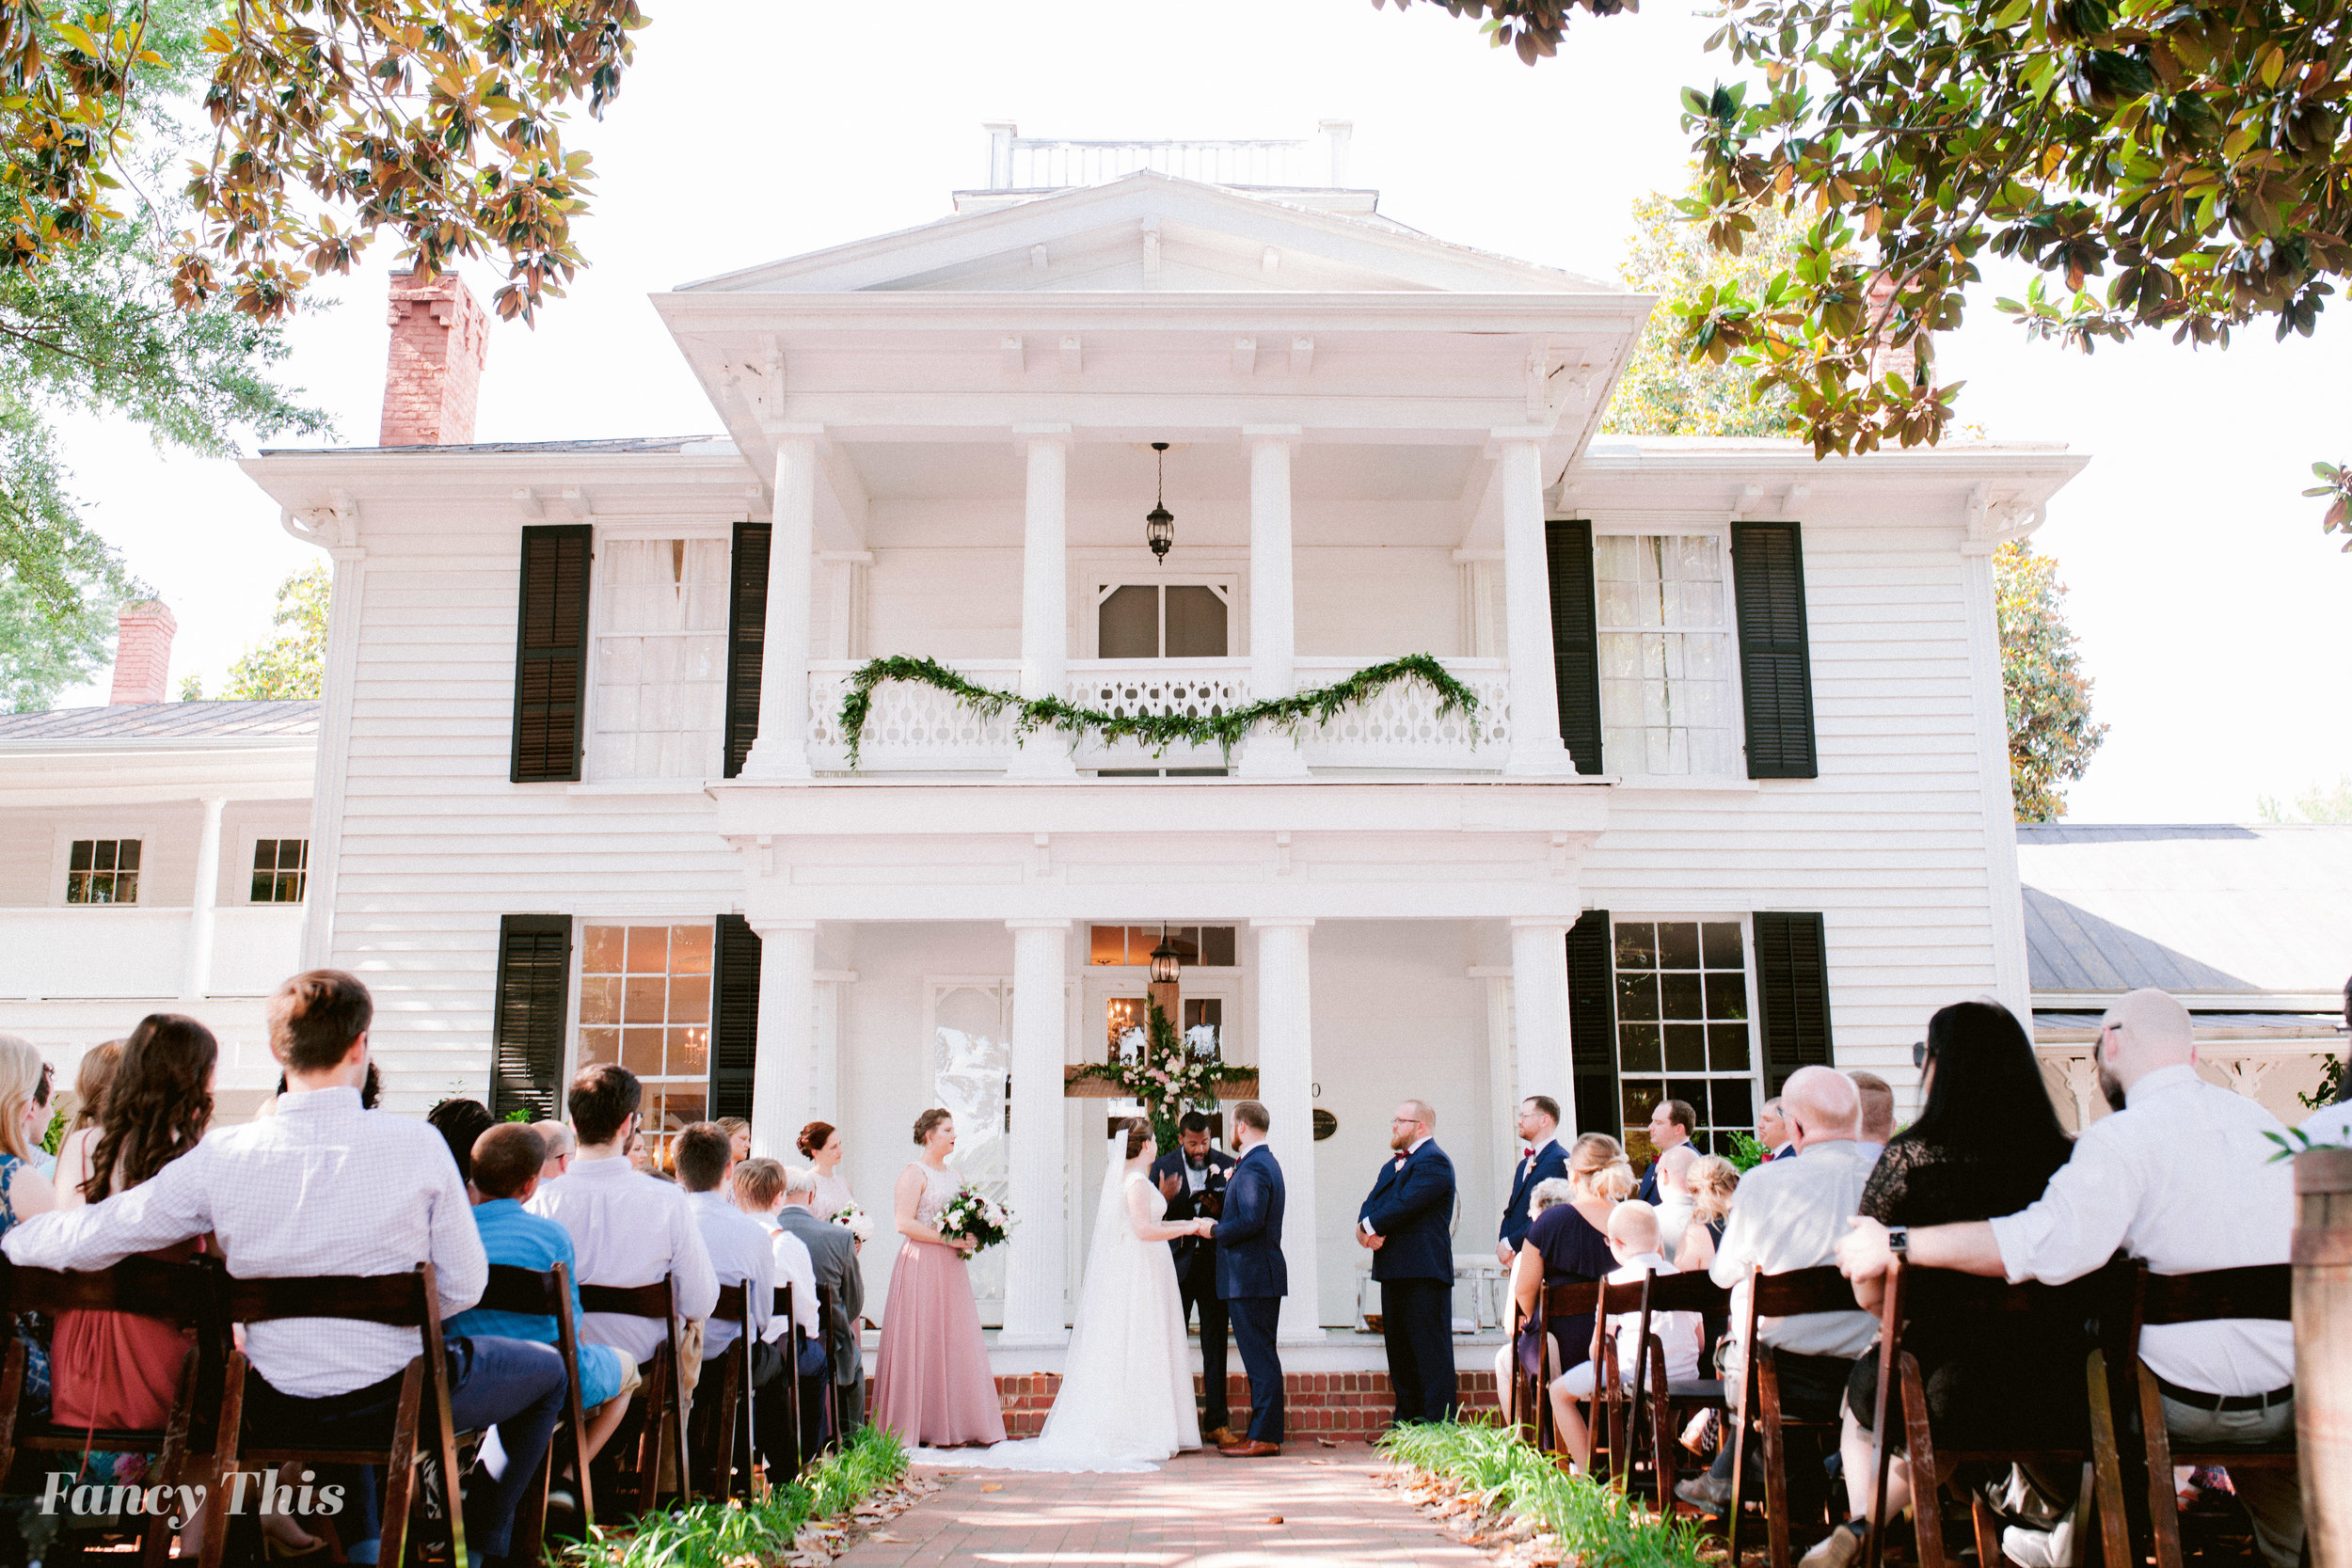 themimshousewedding_summerweddinginhollysprings_fancythis-280.jpg